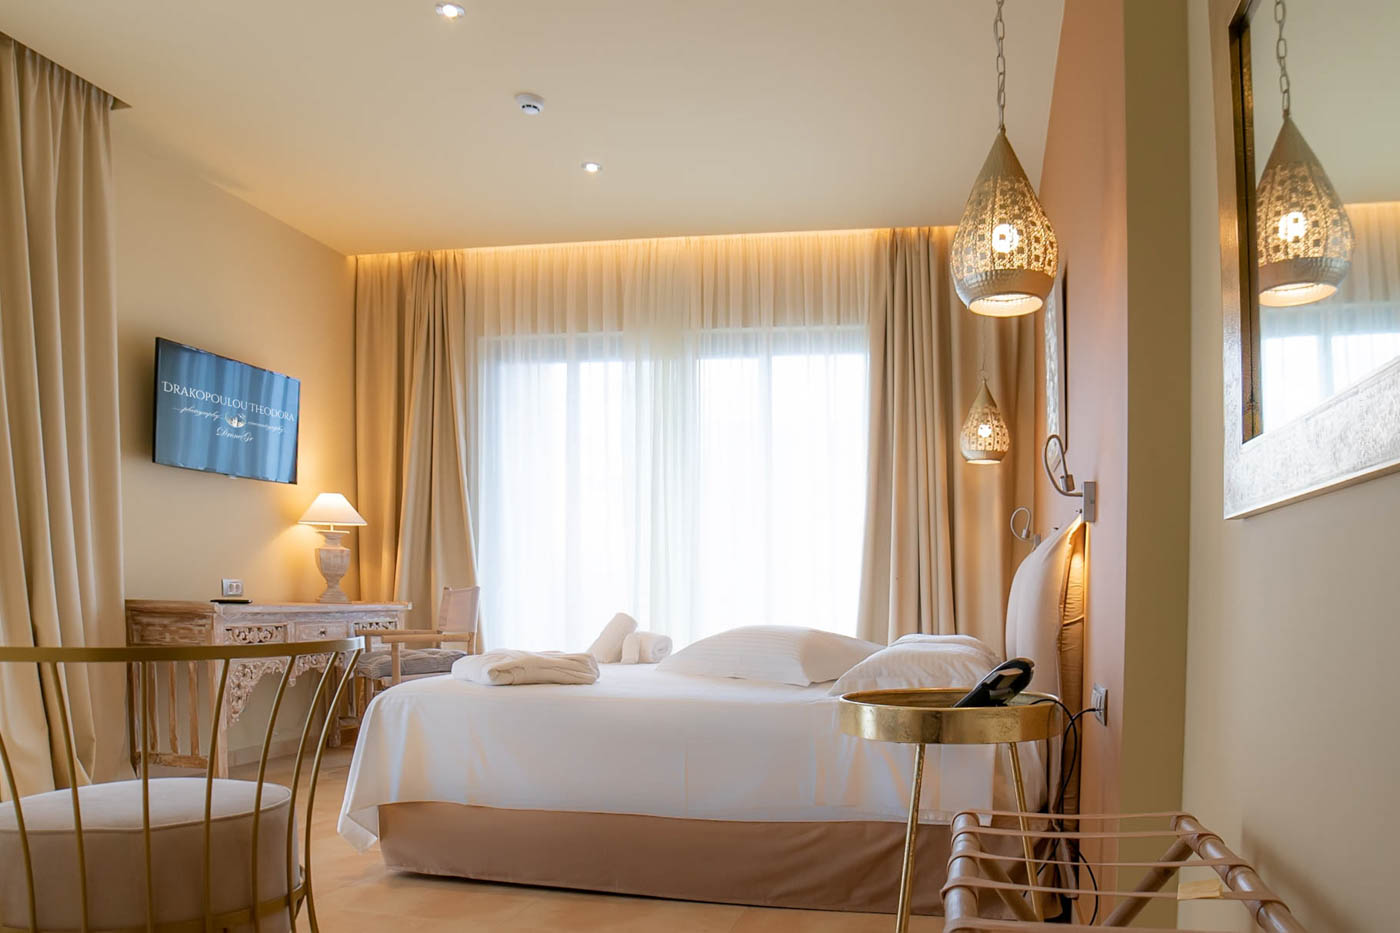 Elysian luxury hotel and spa Kalamata Junior suite